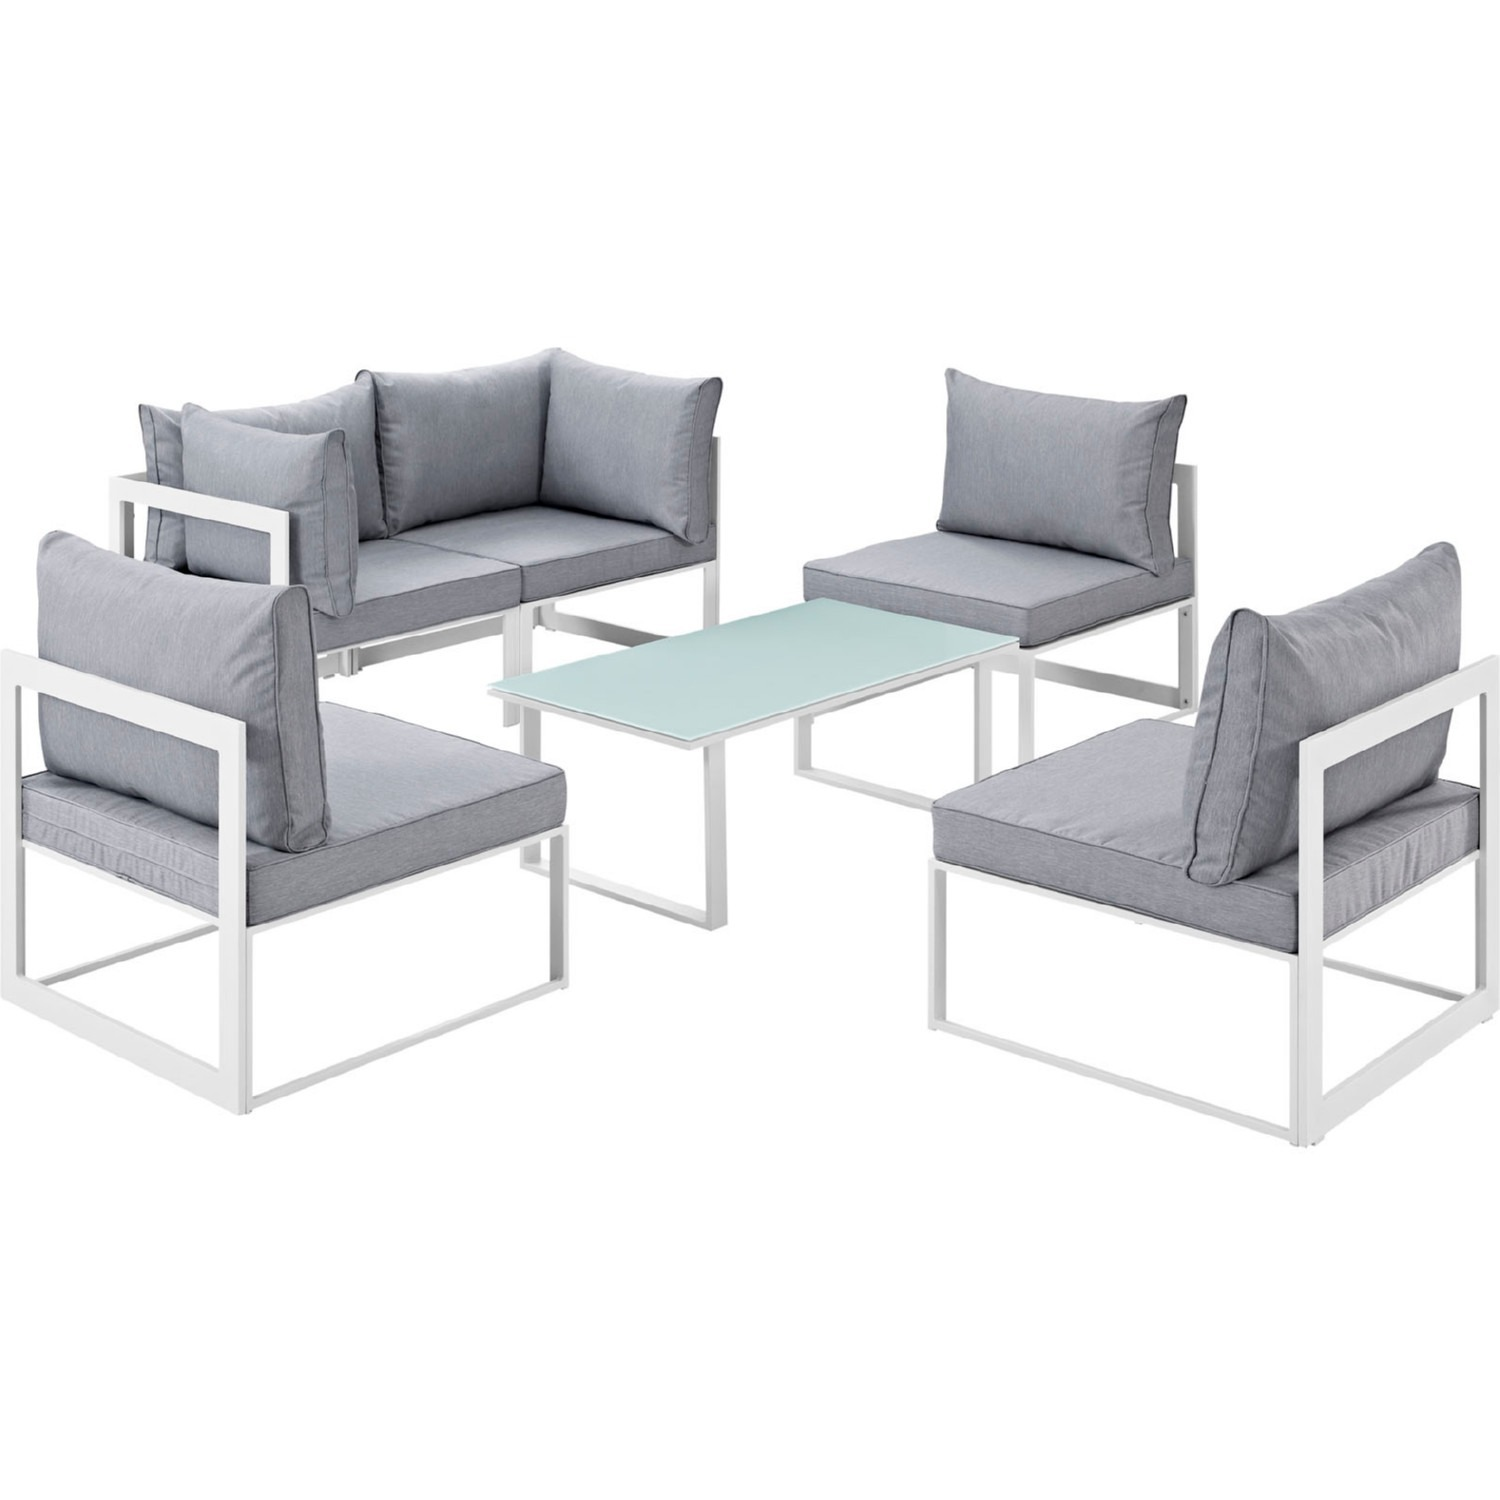 6-Piece Outdoor Sectional In Gray Cushion Fabric - image-0